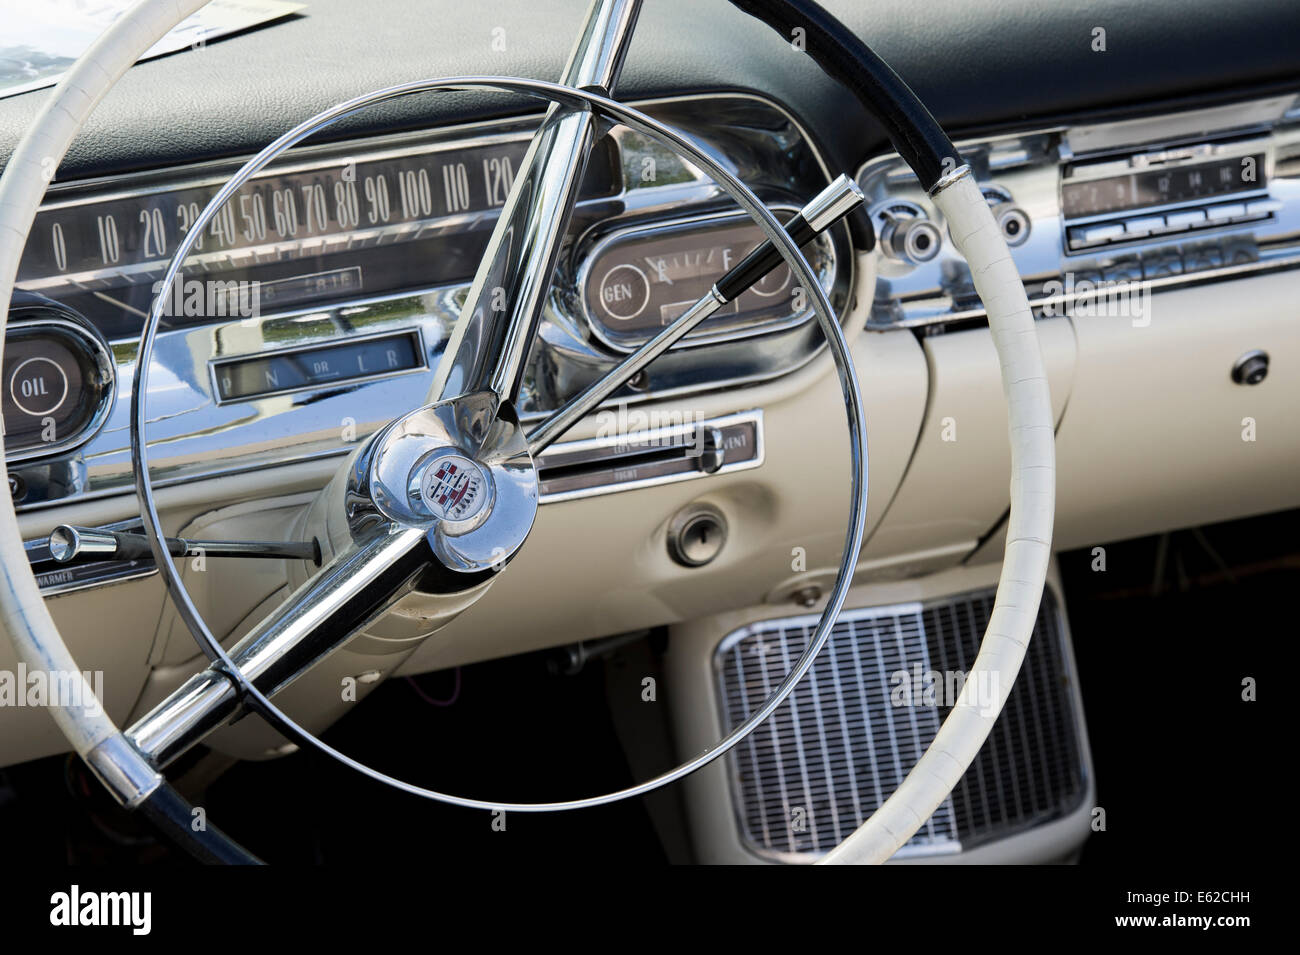 1950s cadillac dashboard and interior abstract classic american car stock photo royalty free. Black Bedroom Furniture Sets. Home Design Ideas